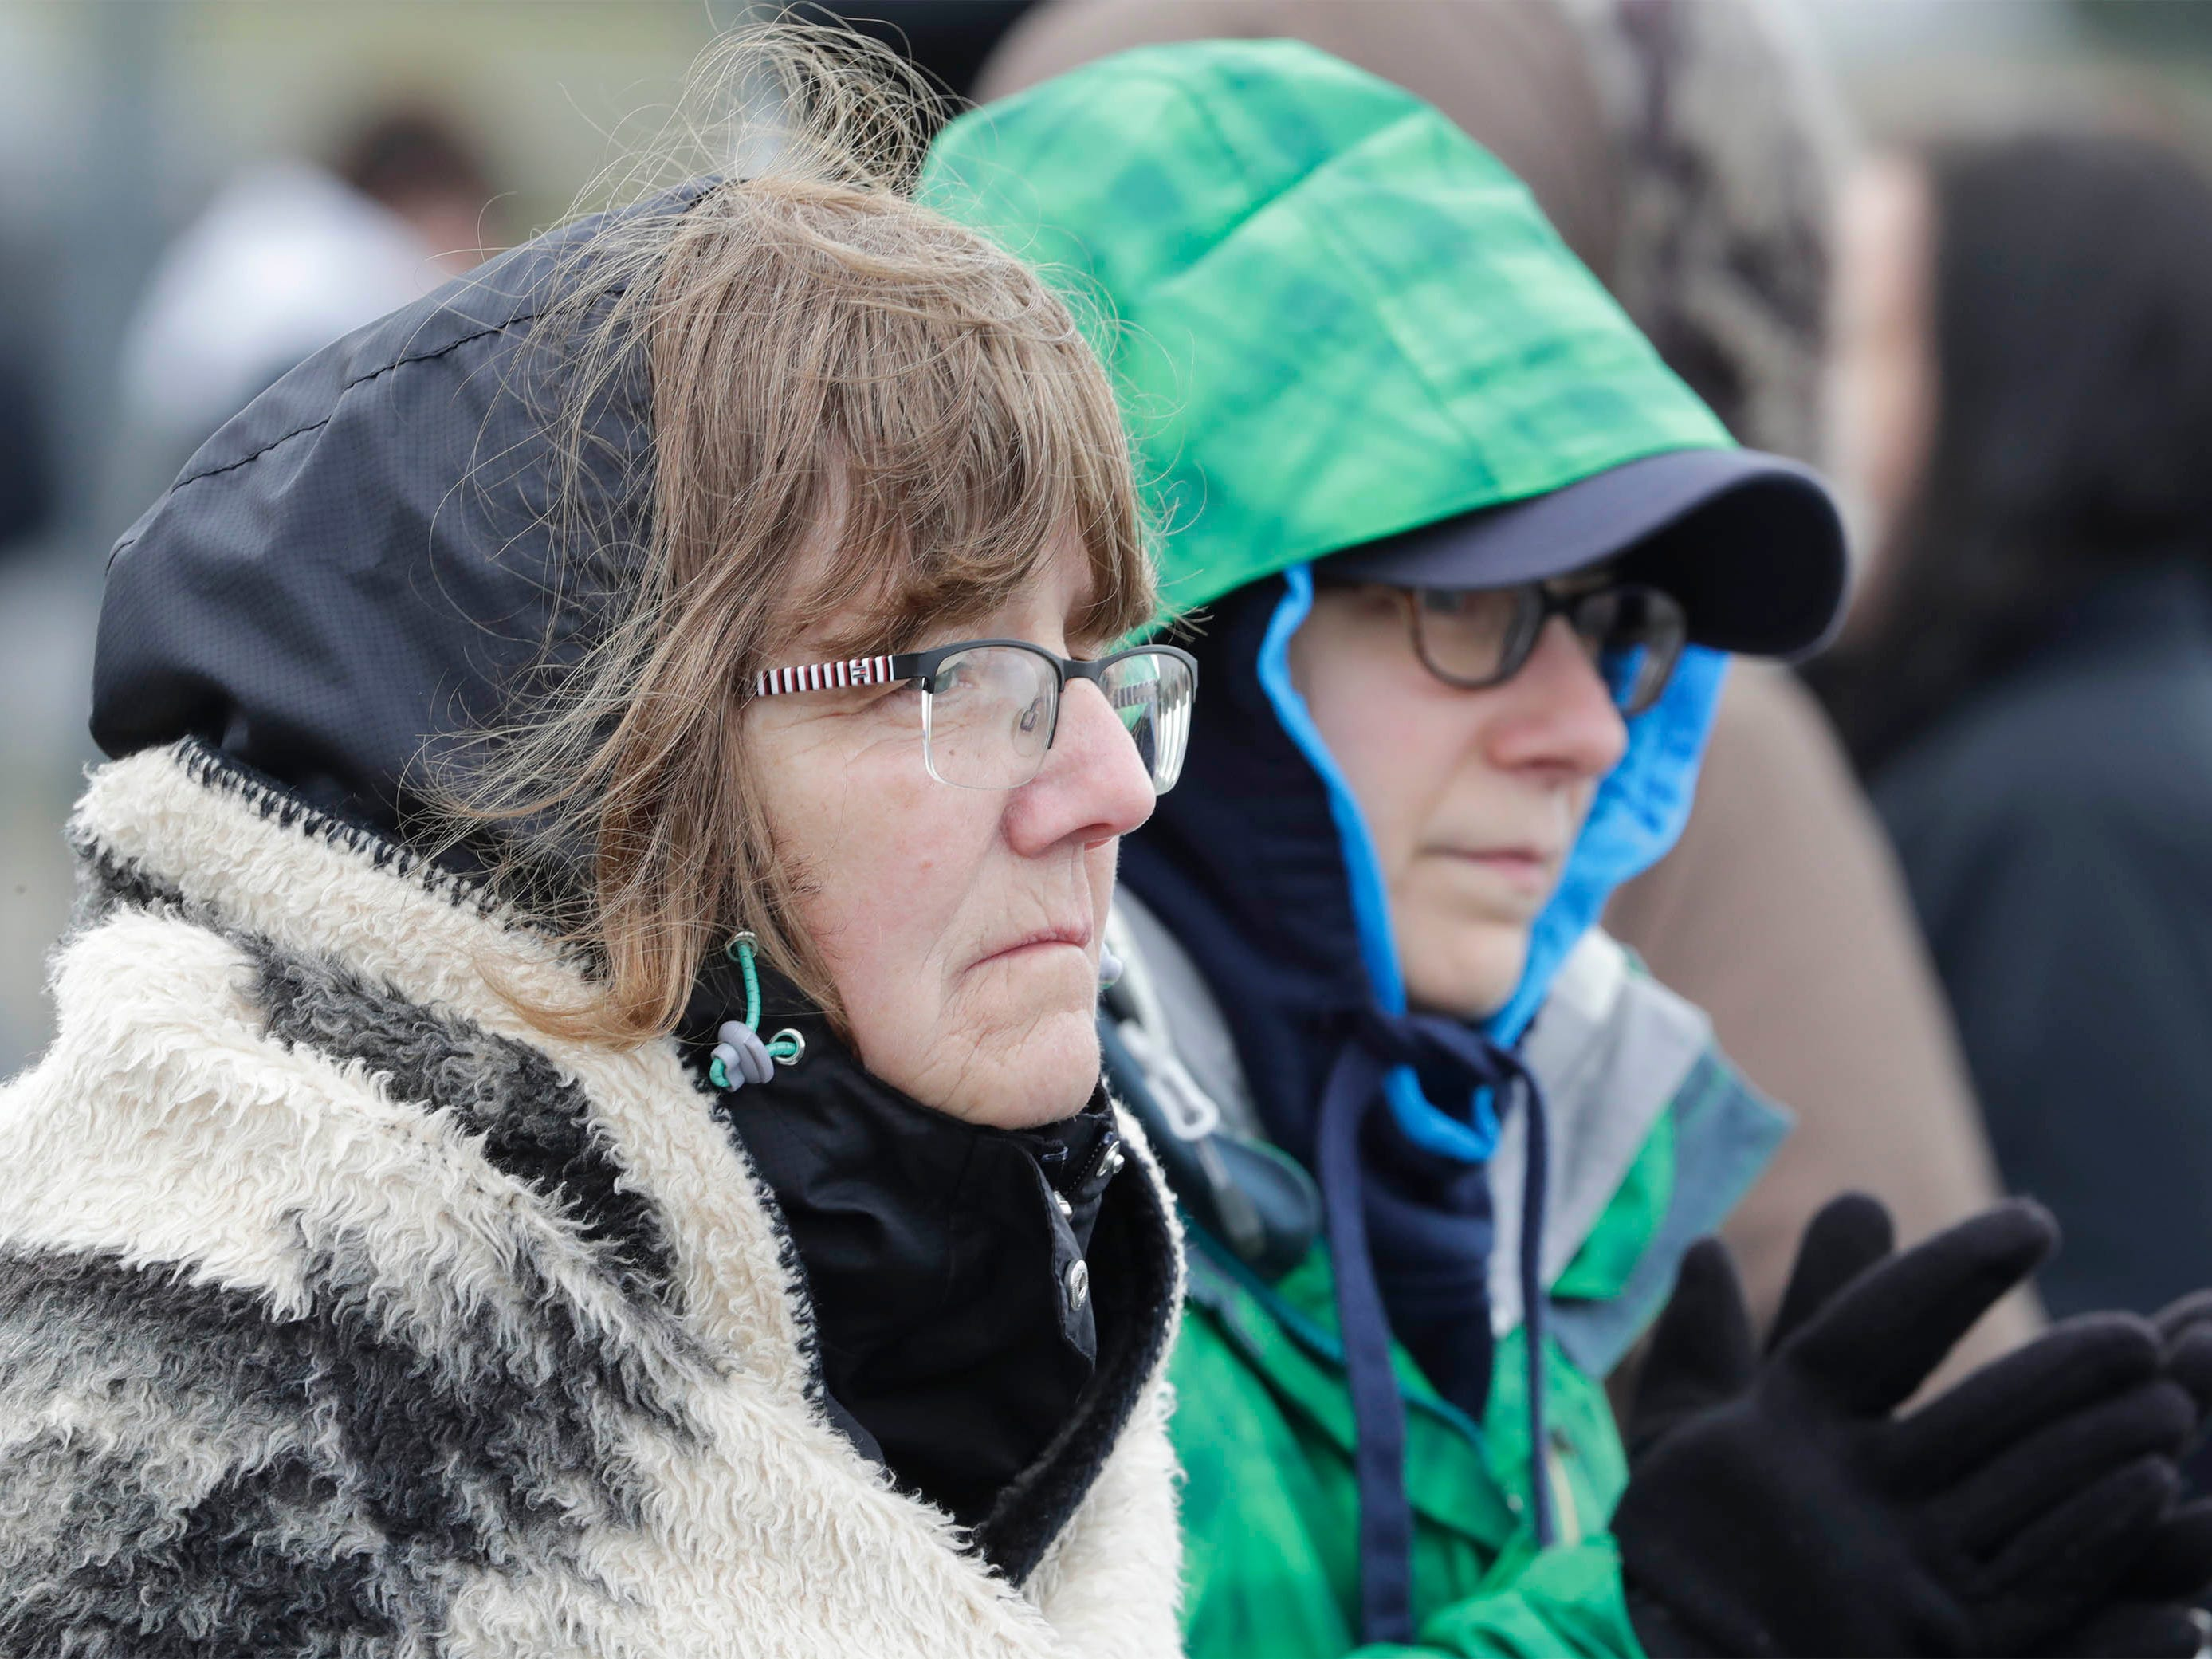 Pat McKee, of Plymouth, Wis, left, and Marisa McKee, of Fredonia, Wis., bundle for the weather at the Cedar Grove track meet, Tuesday, April 16, 2019, in Cedar Grove, Wis.